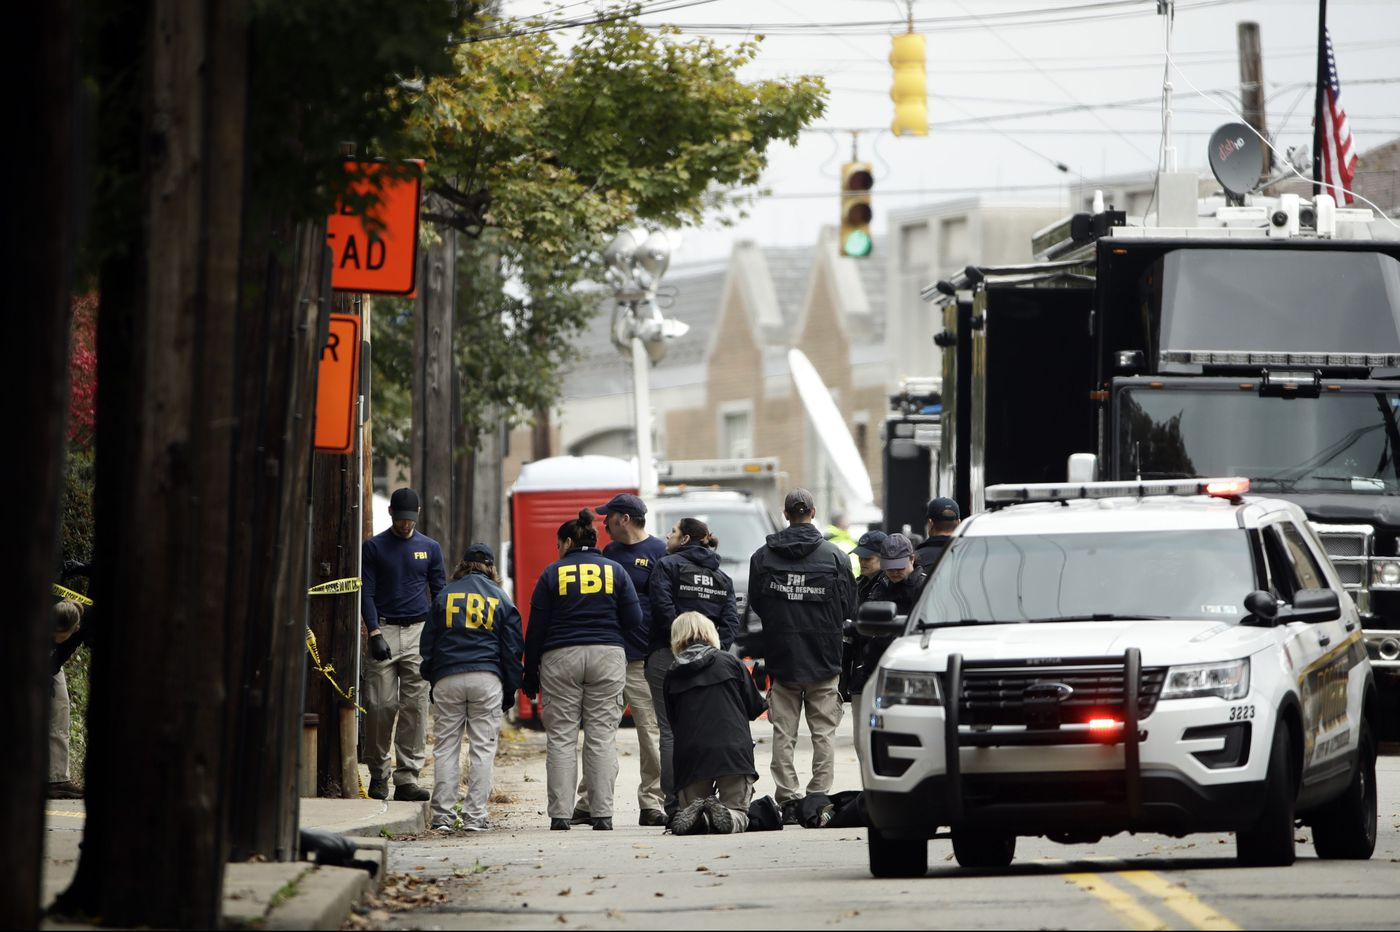 What is Gab, the social media network frequented by the Pittsburgh shooter?